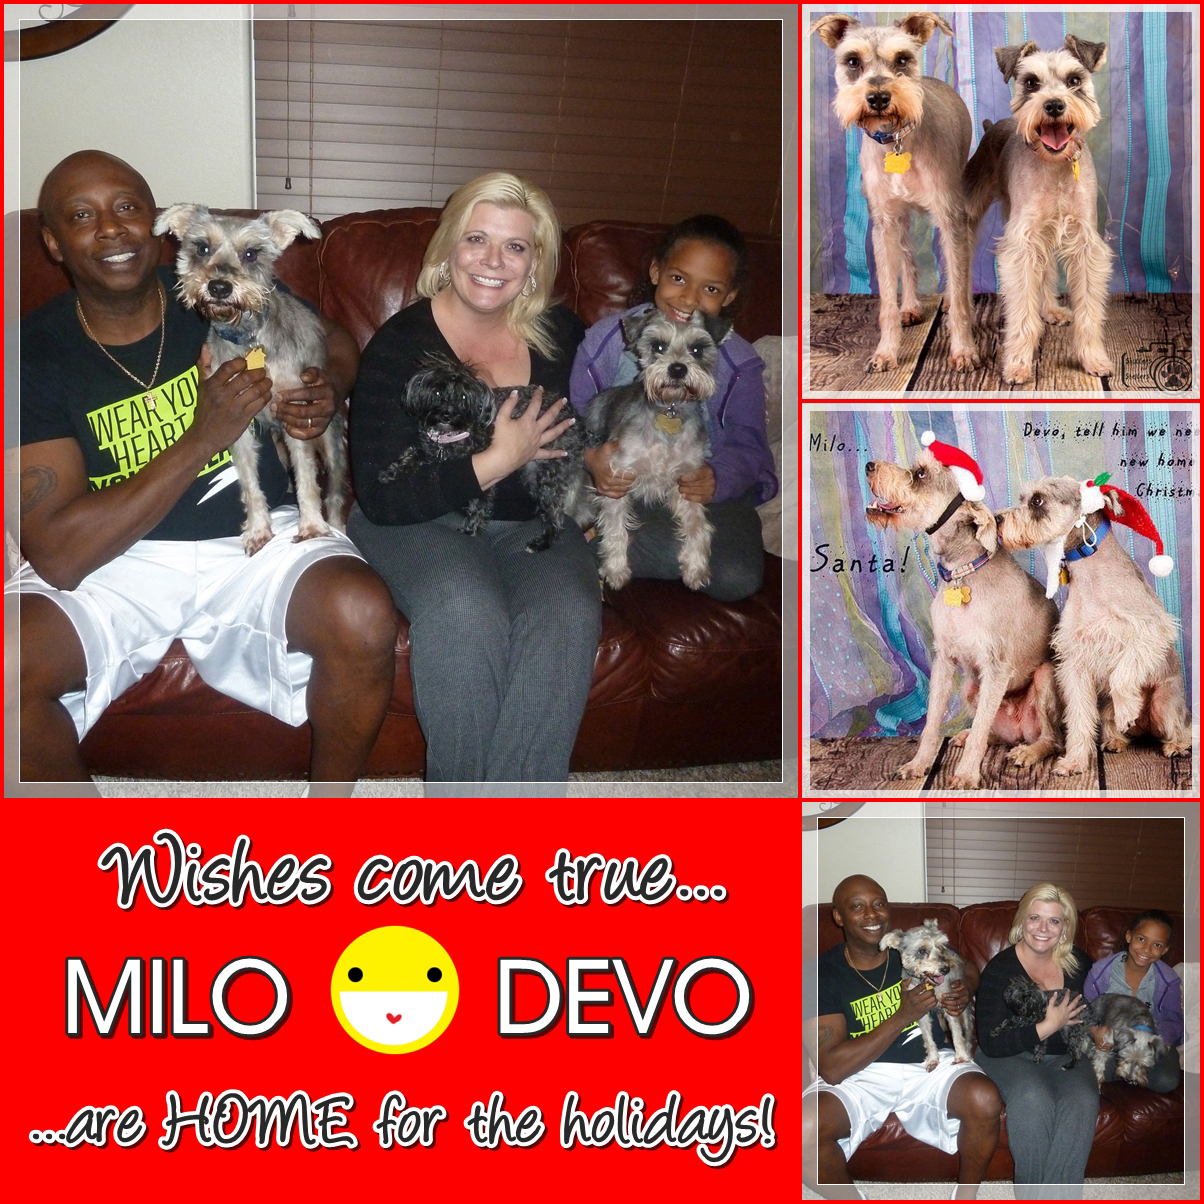 Milo and Devo were adopted!